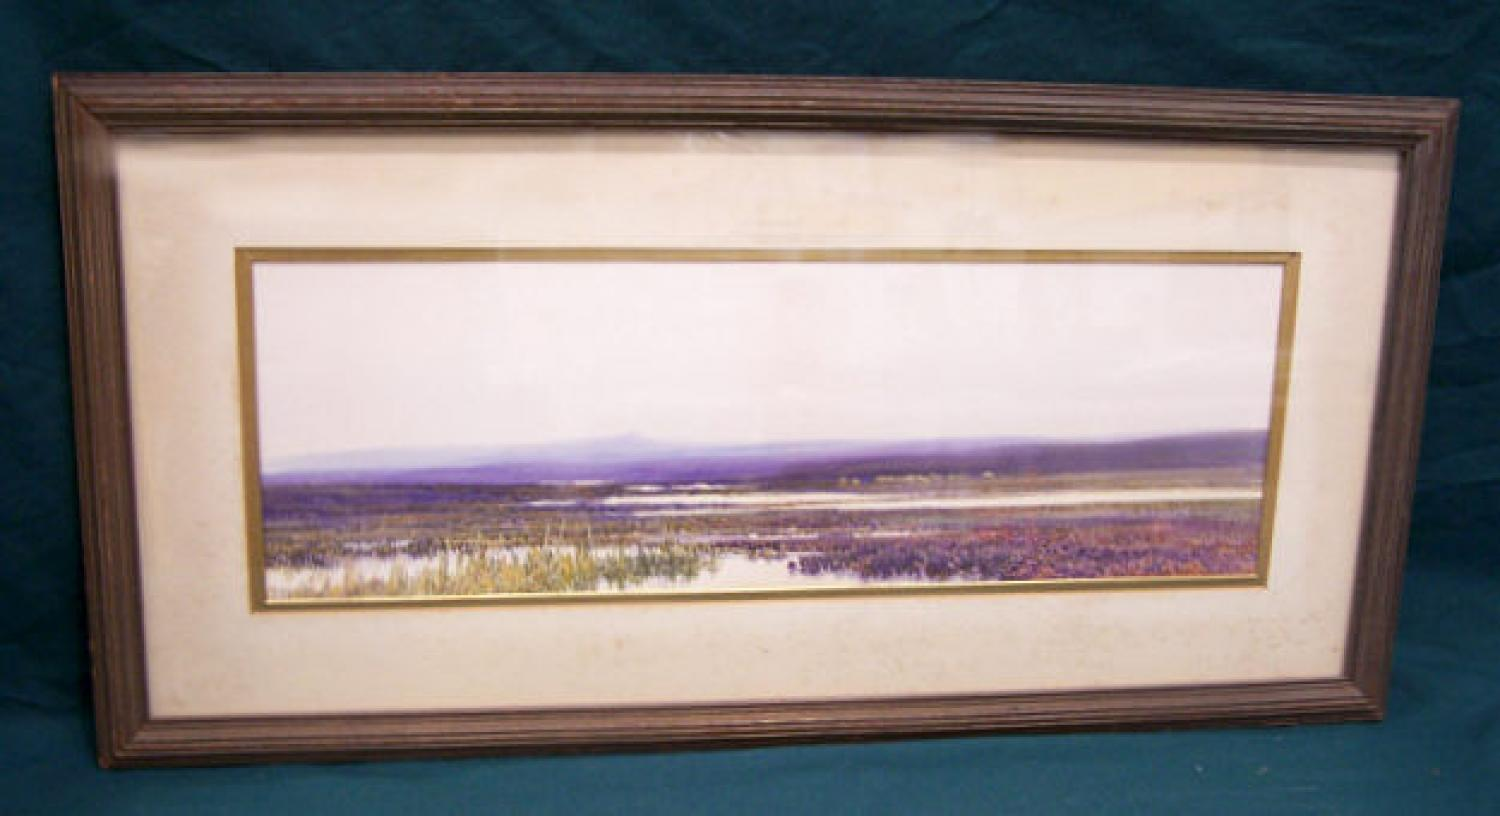 Landscape Watercolour by British artist F J Widgery c1880